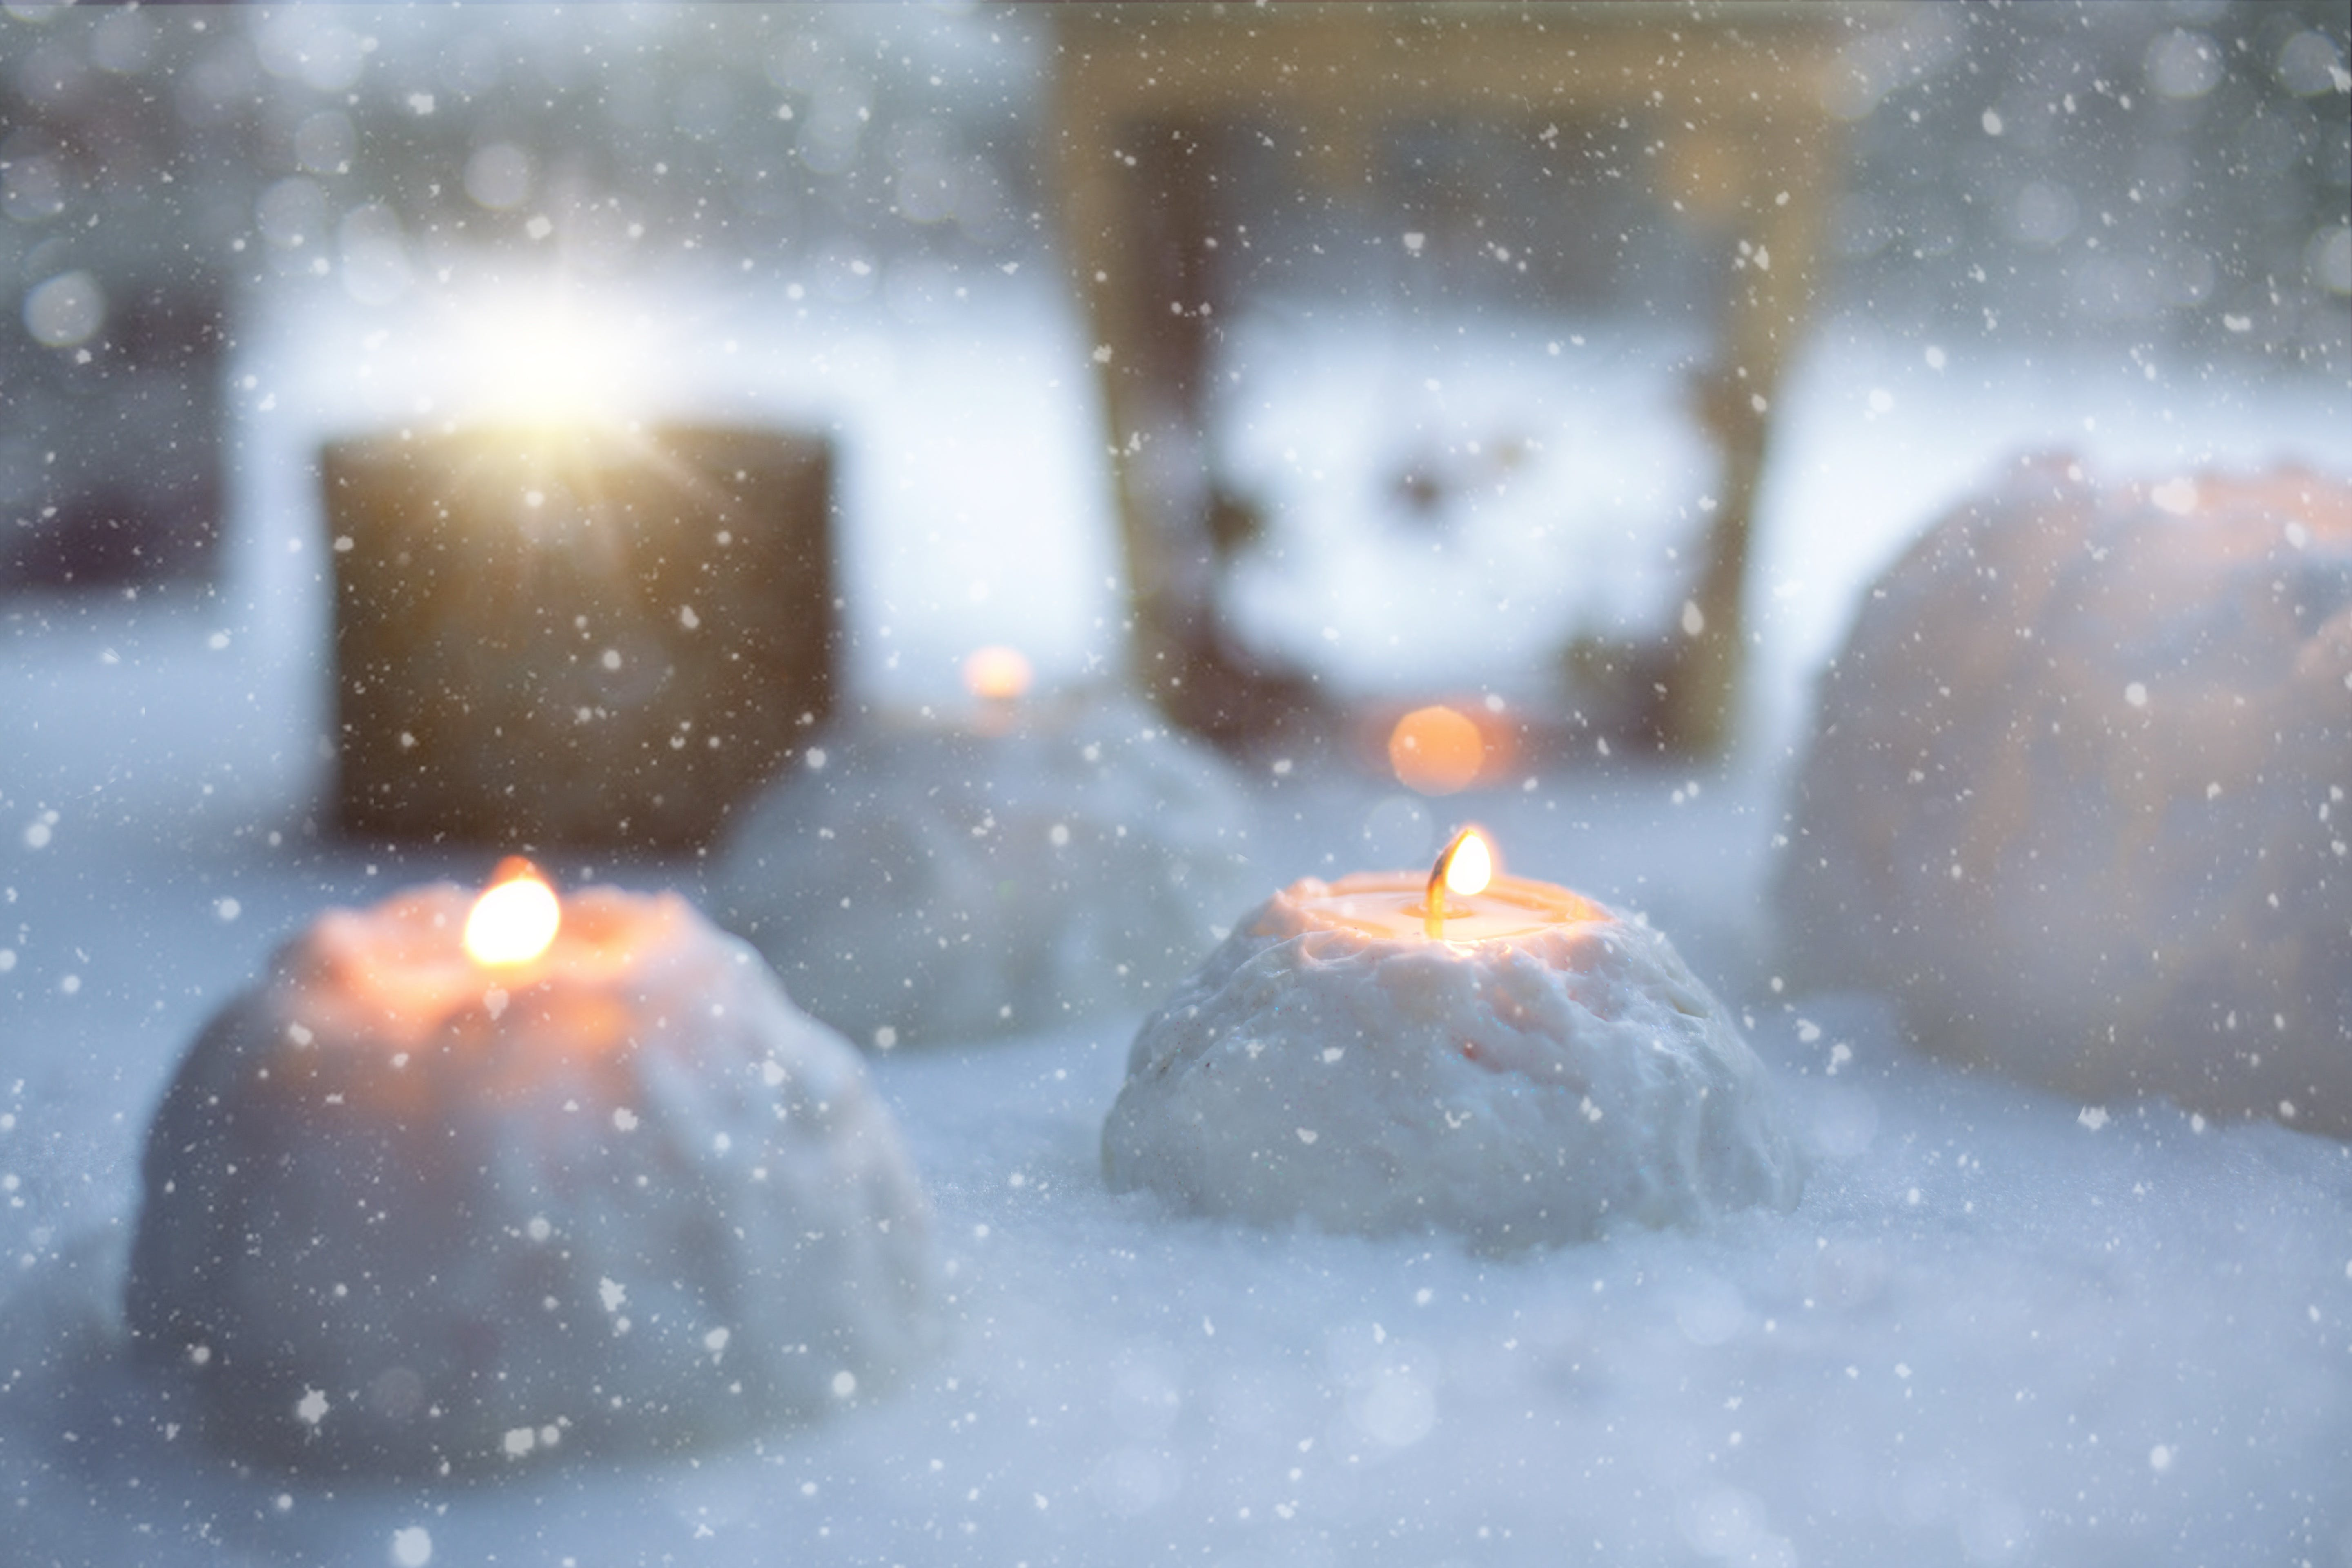 Two Candles Filled With Snows